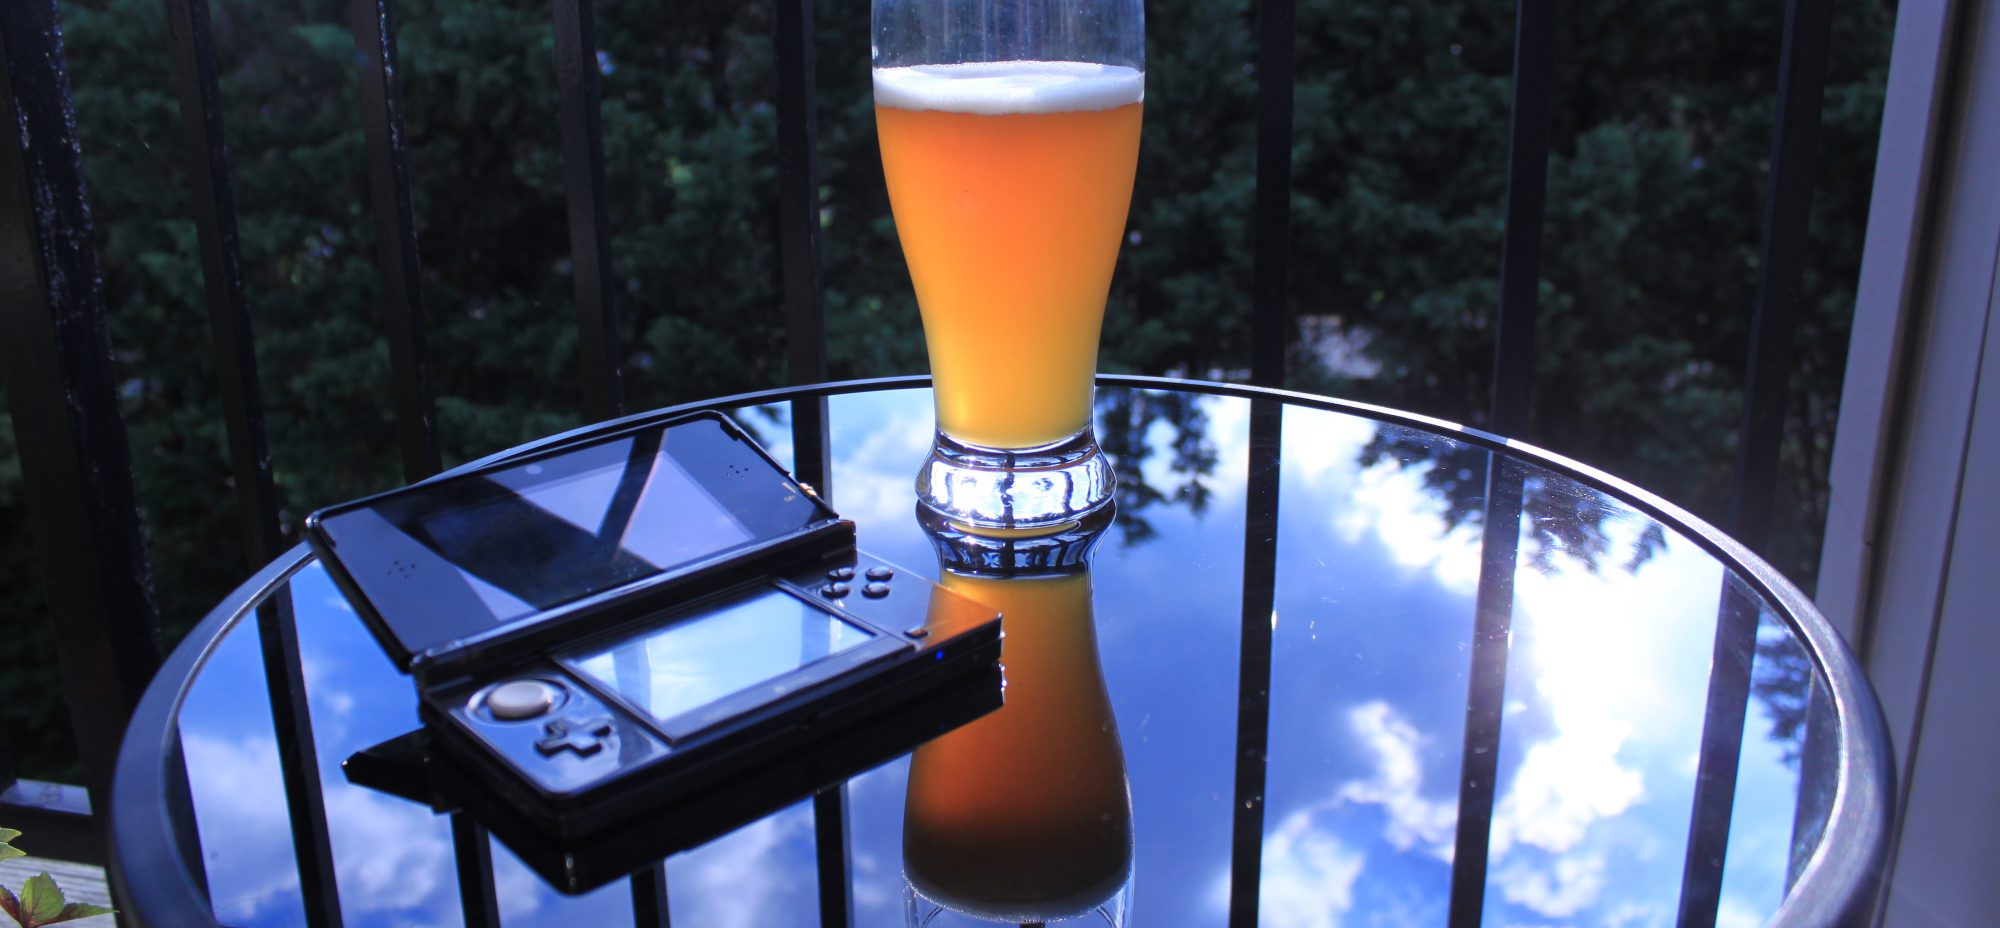 Digital Draughts – Video Game and Beer Pairings